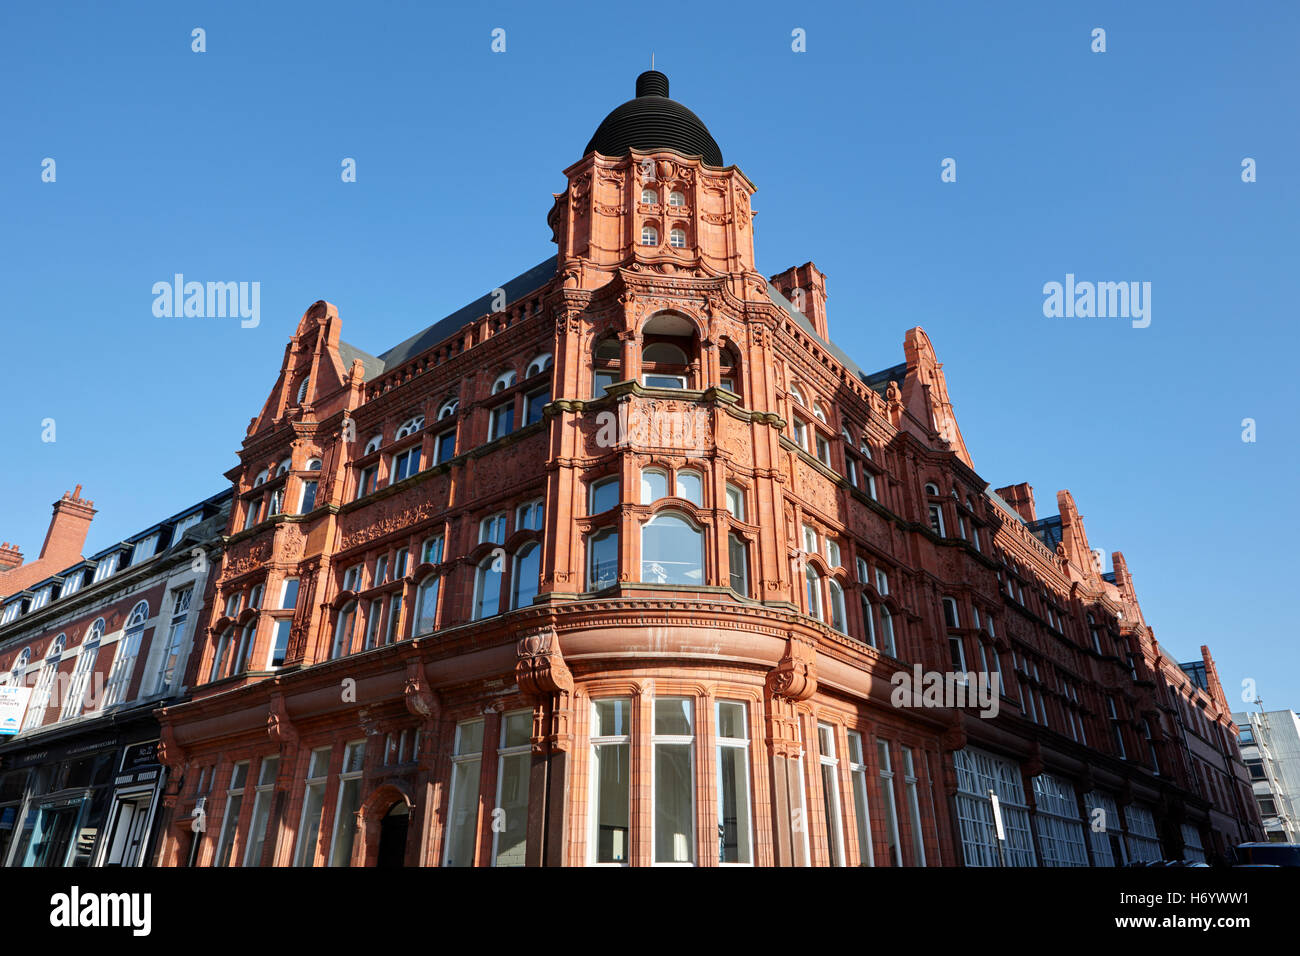 Wigan library former municipal building England United Kingdom - Stock Image